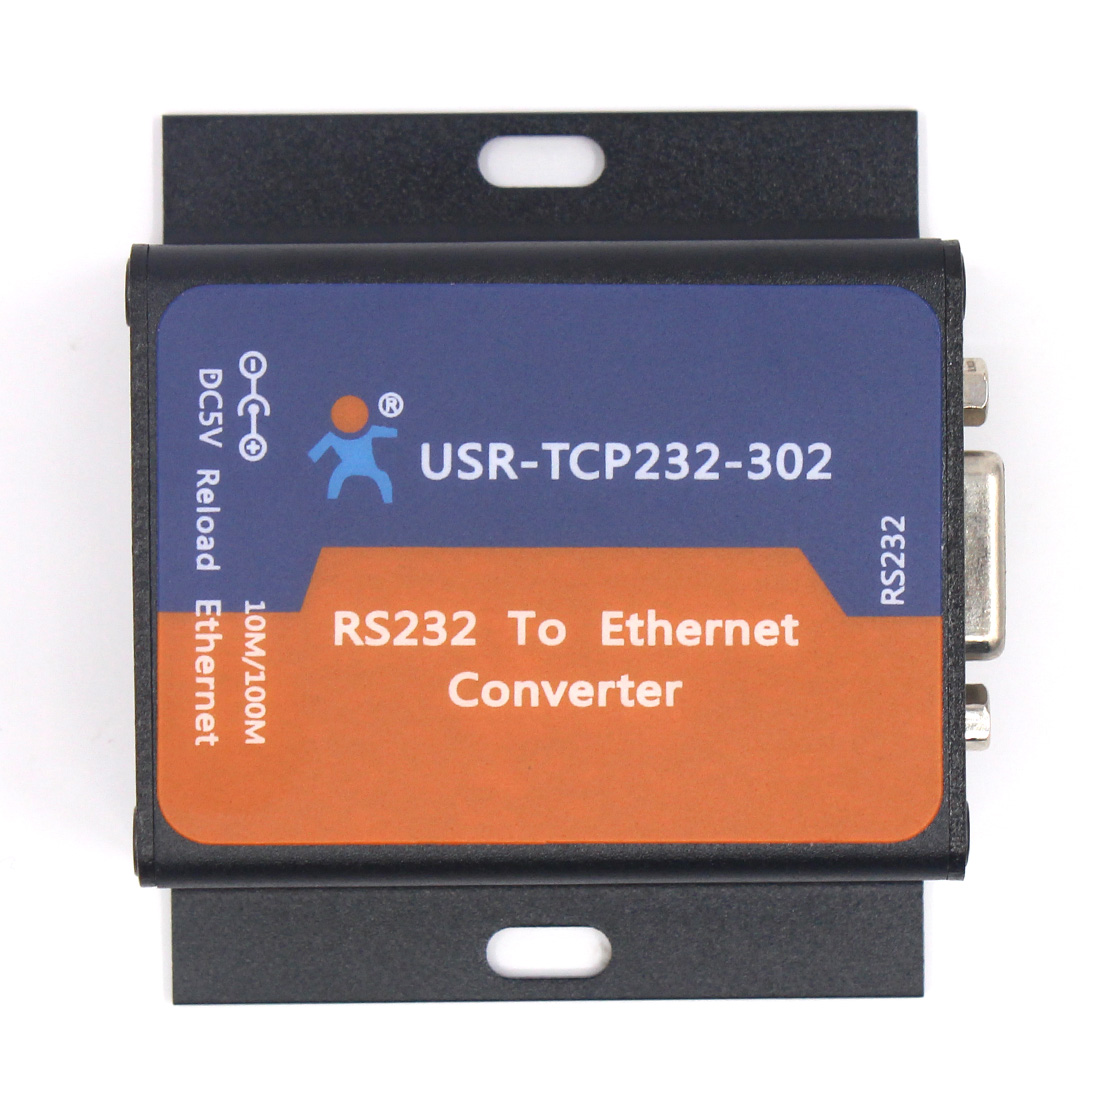 Q18041 USR-TCP232-302 Tiny Size Serial RS232 to Ethernet TCP IP Server Module Ethernet Converter Support DHCP/DNS usr tcp232 302 tiny size serial rs232 to ethernet tcp ip server module ethernet converter support dhcp dns 200 upgraded q033